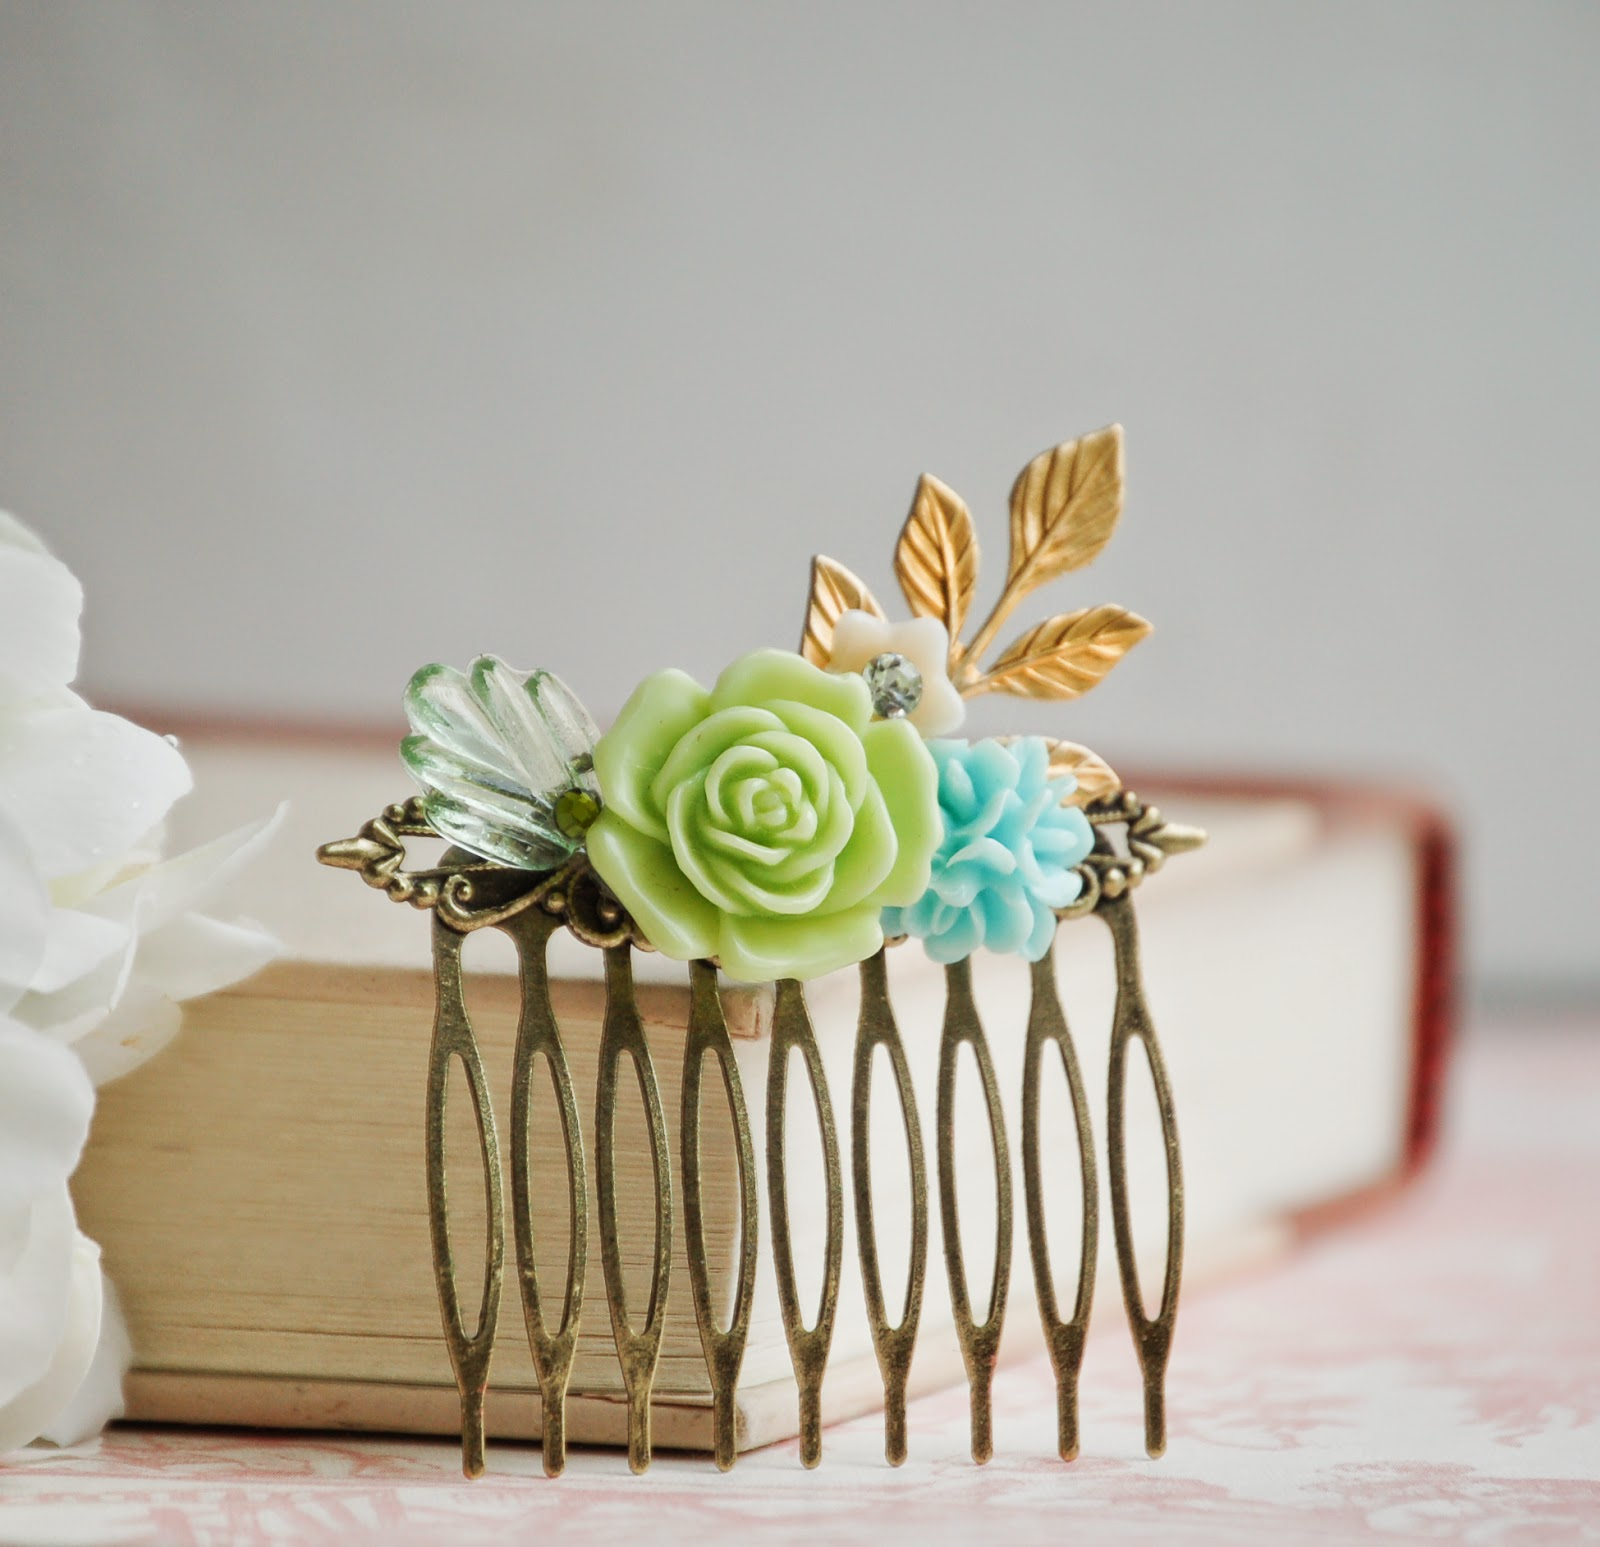 https://www.etsy.com/listing/191447315/lime-green-rose-flower-hair-comb-aqua?ref=shop_home_active_1&ga_search_query=flower%2Bhair%2Bcombs